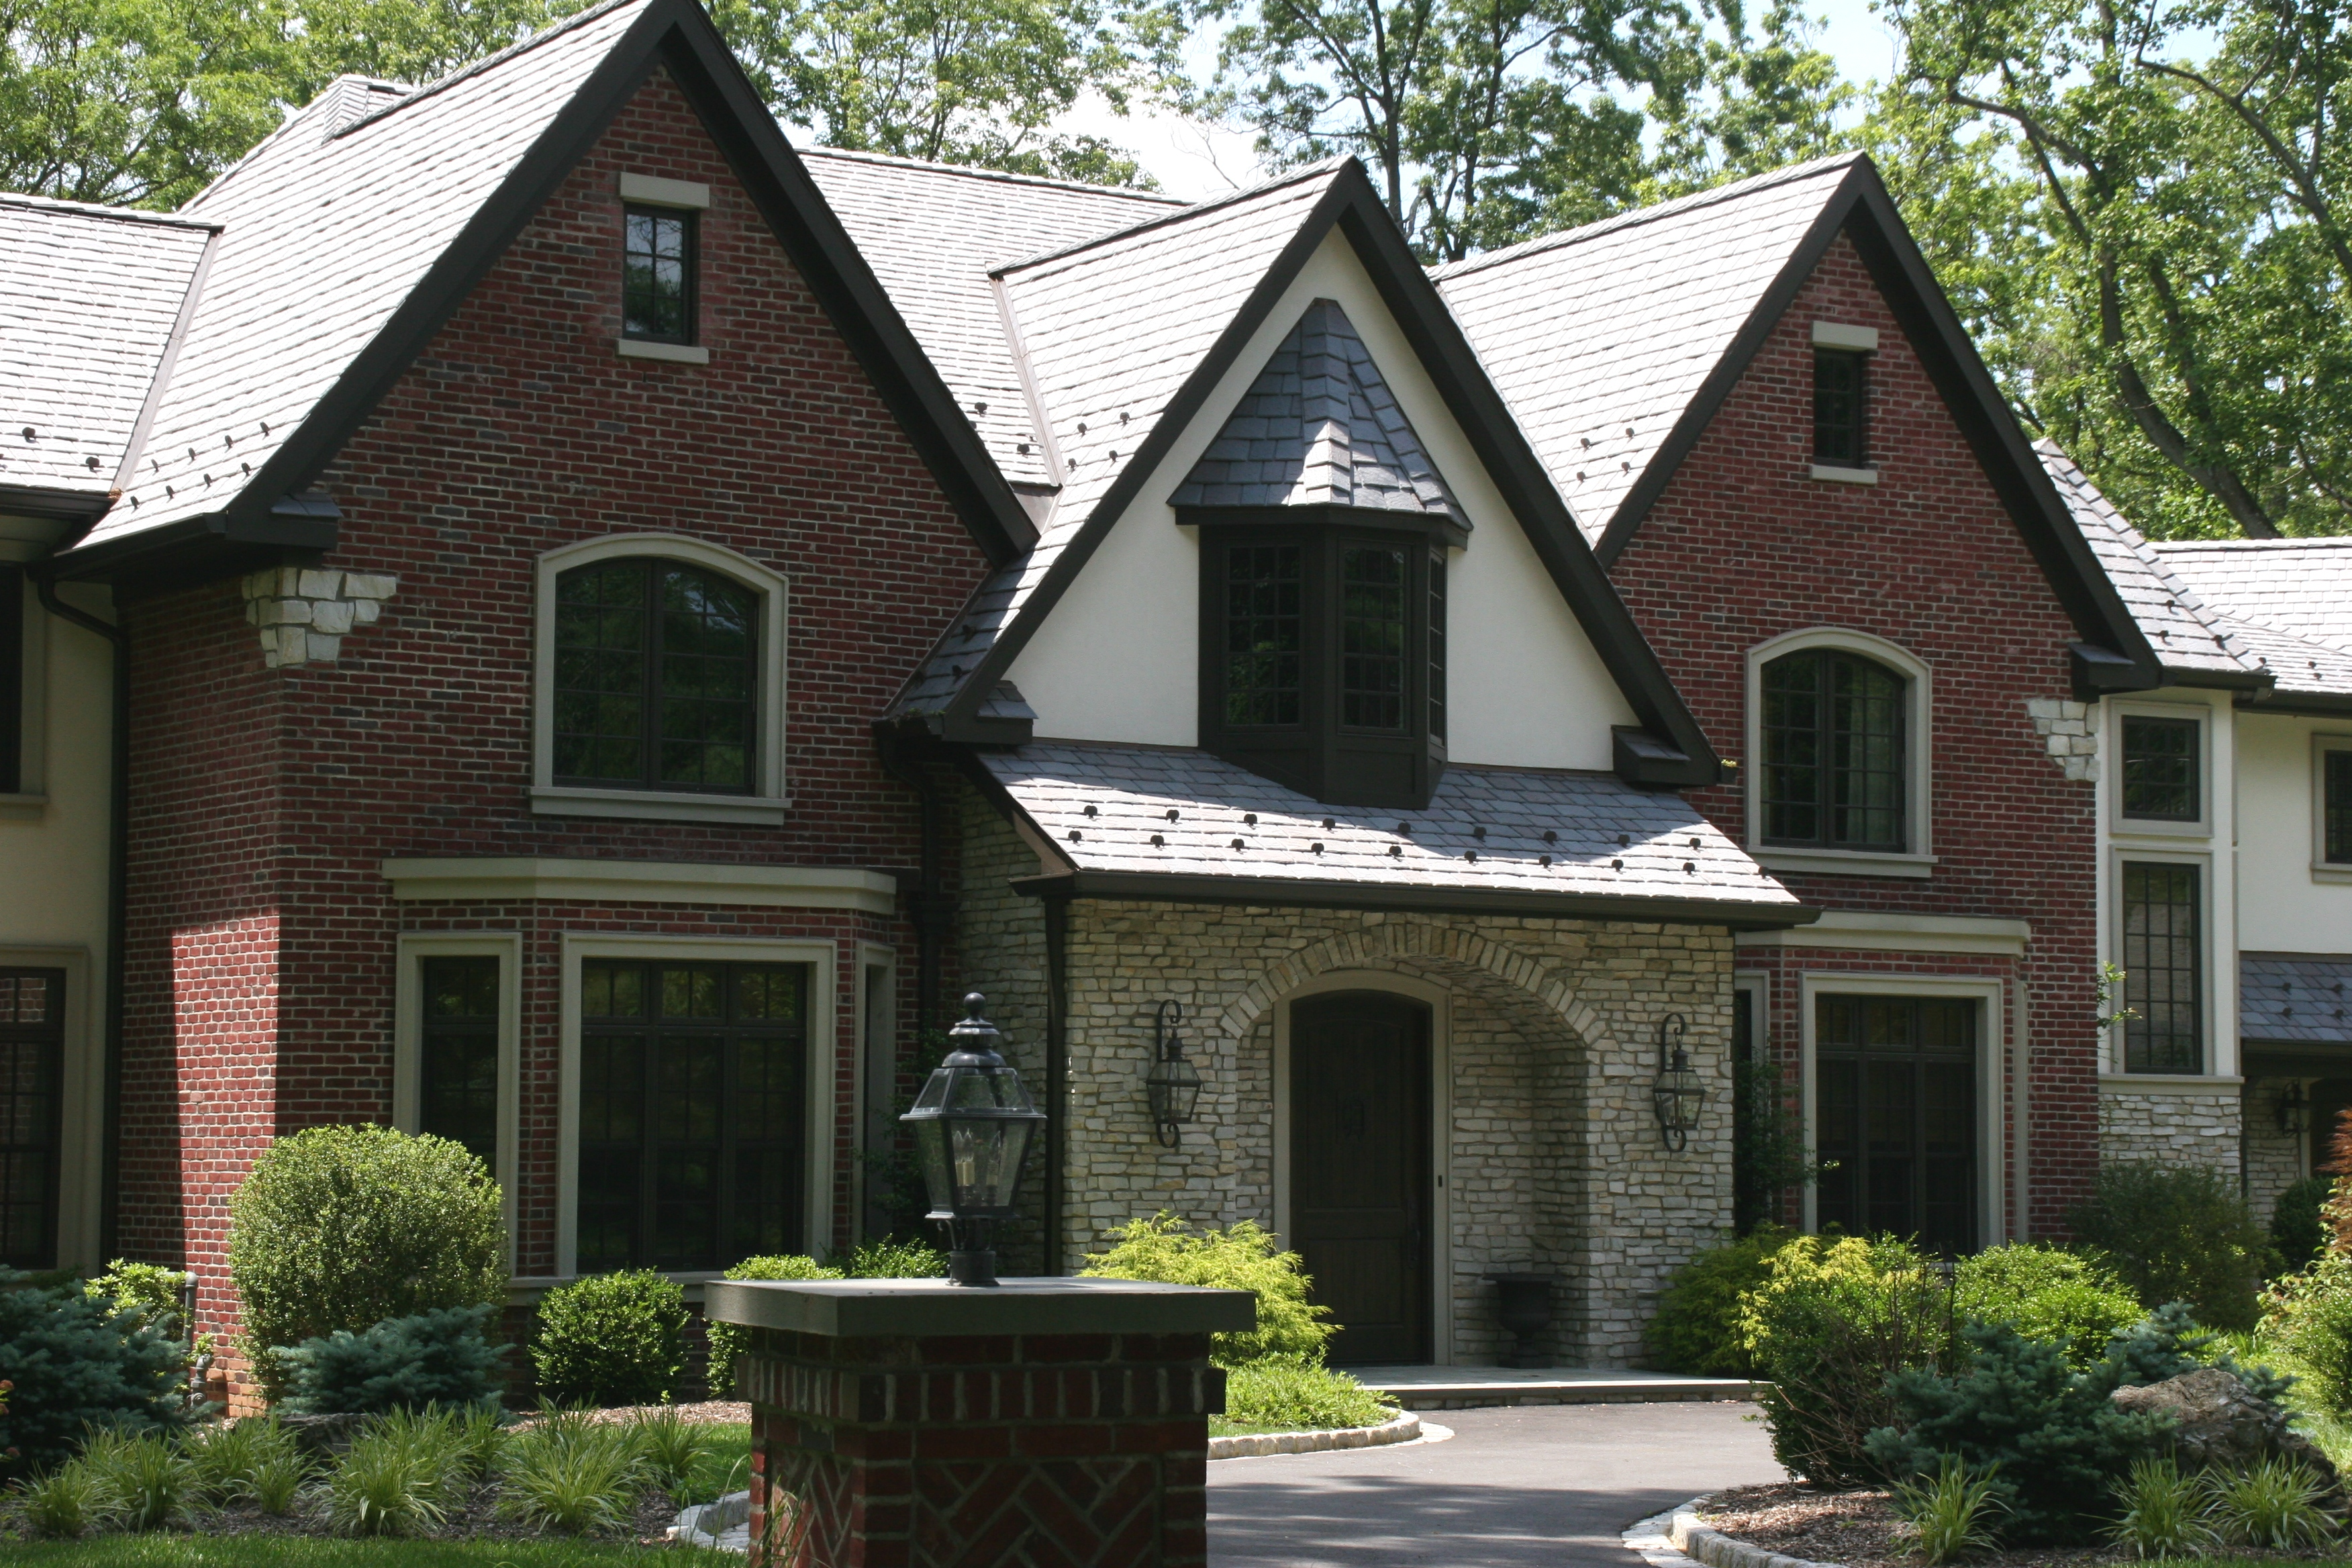 Stucco And Brick Exterior residential gallery | :: american brickface & stucco exteriors ::